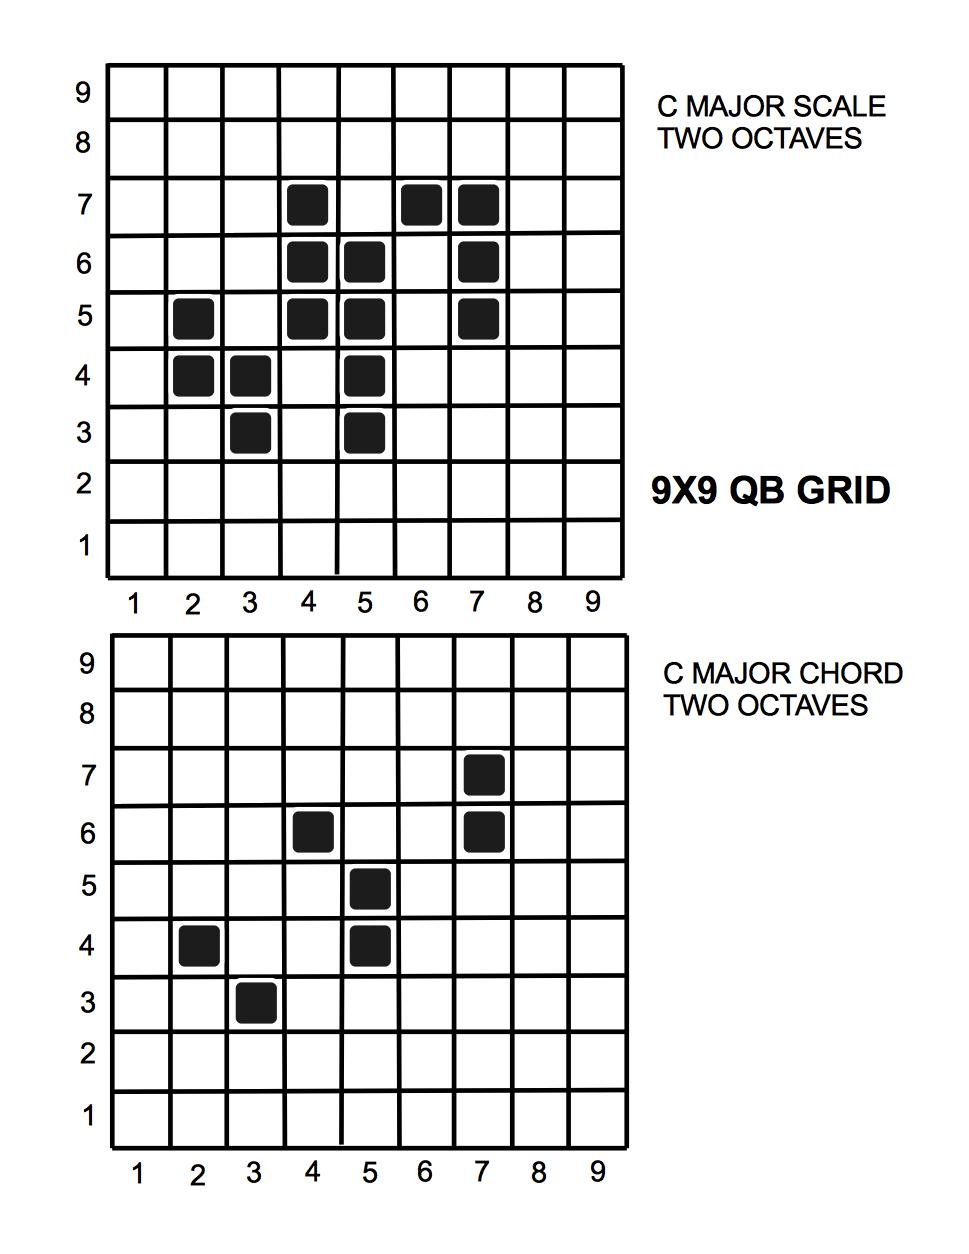 9X9 GRID-C MAJOR-SCALE AND CHORD